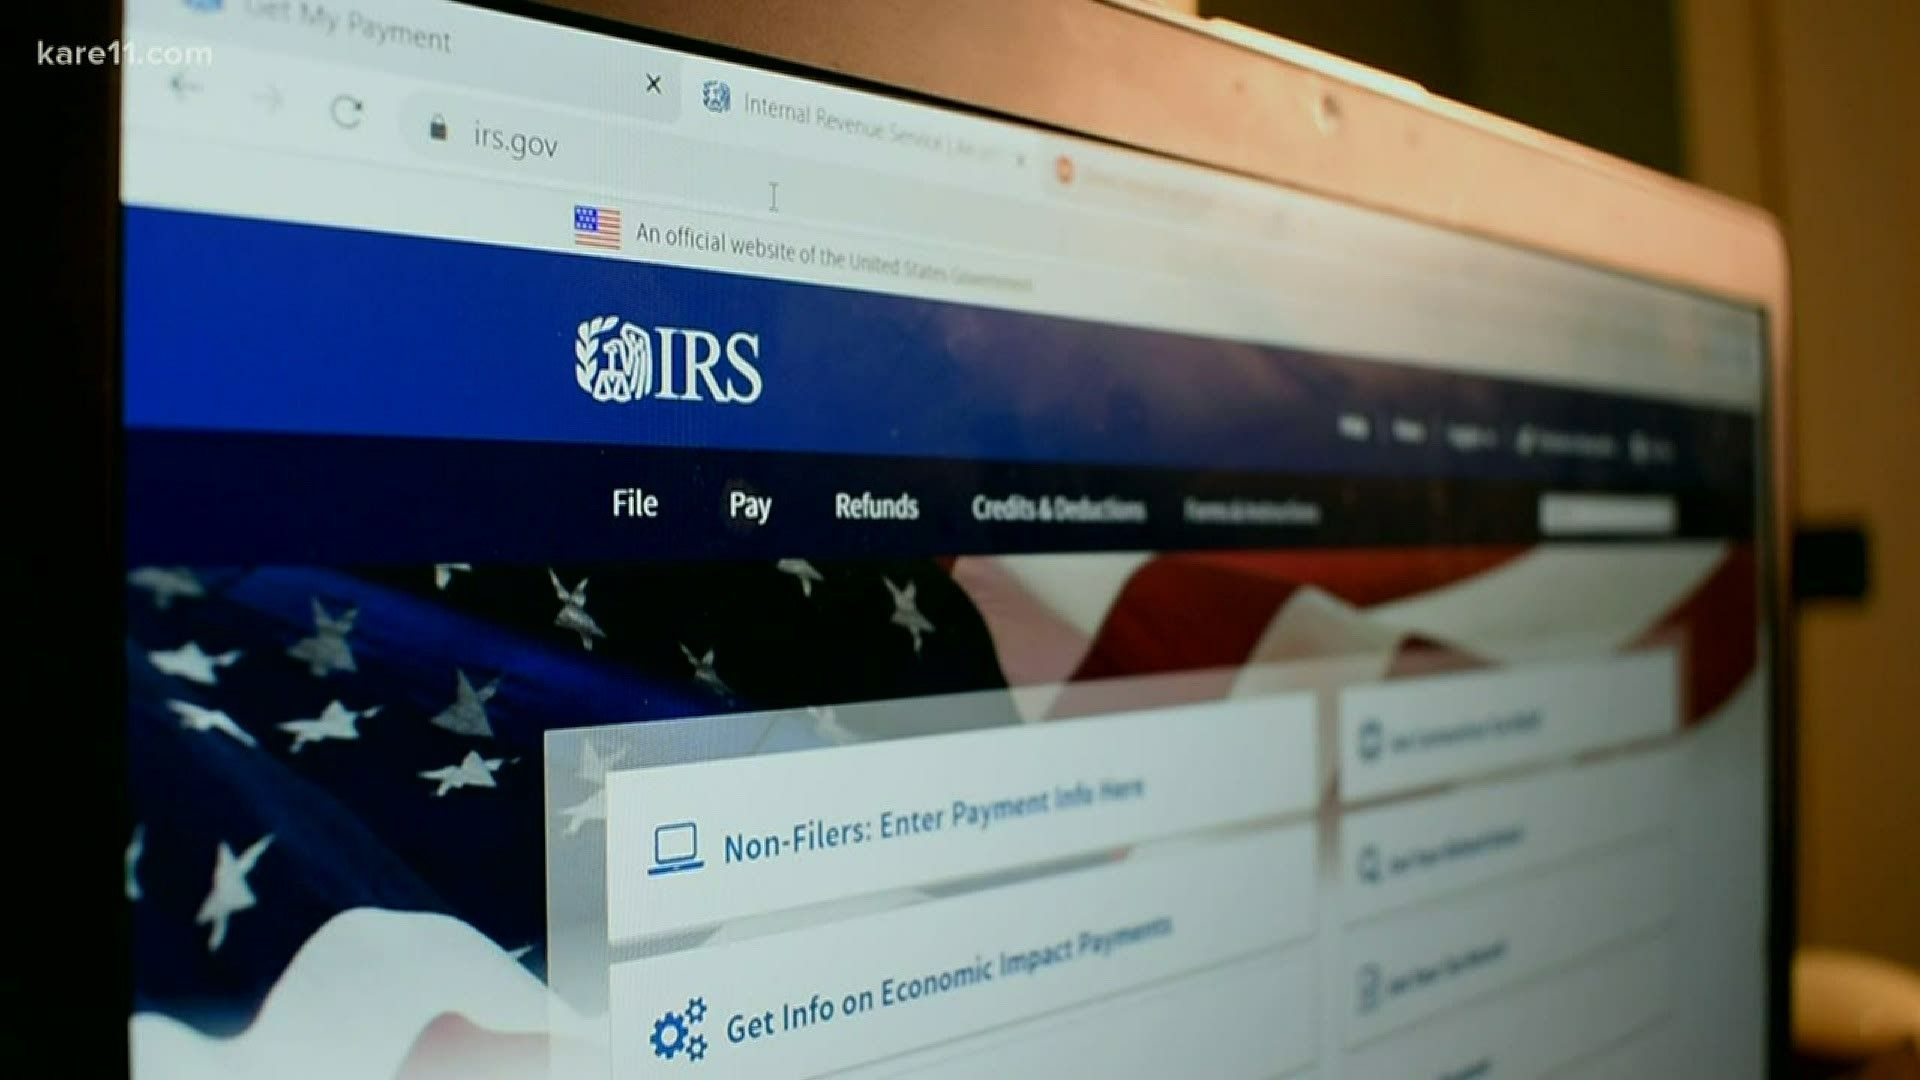 When Will You Get Your Stimulus Check? Irs Launches Tracking Tool